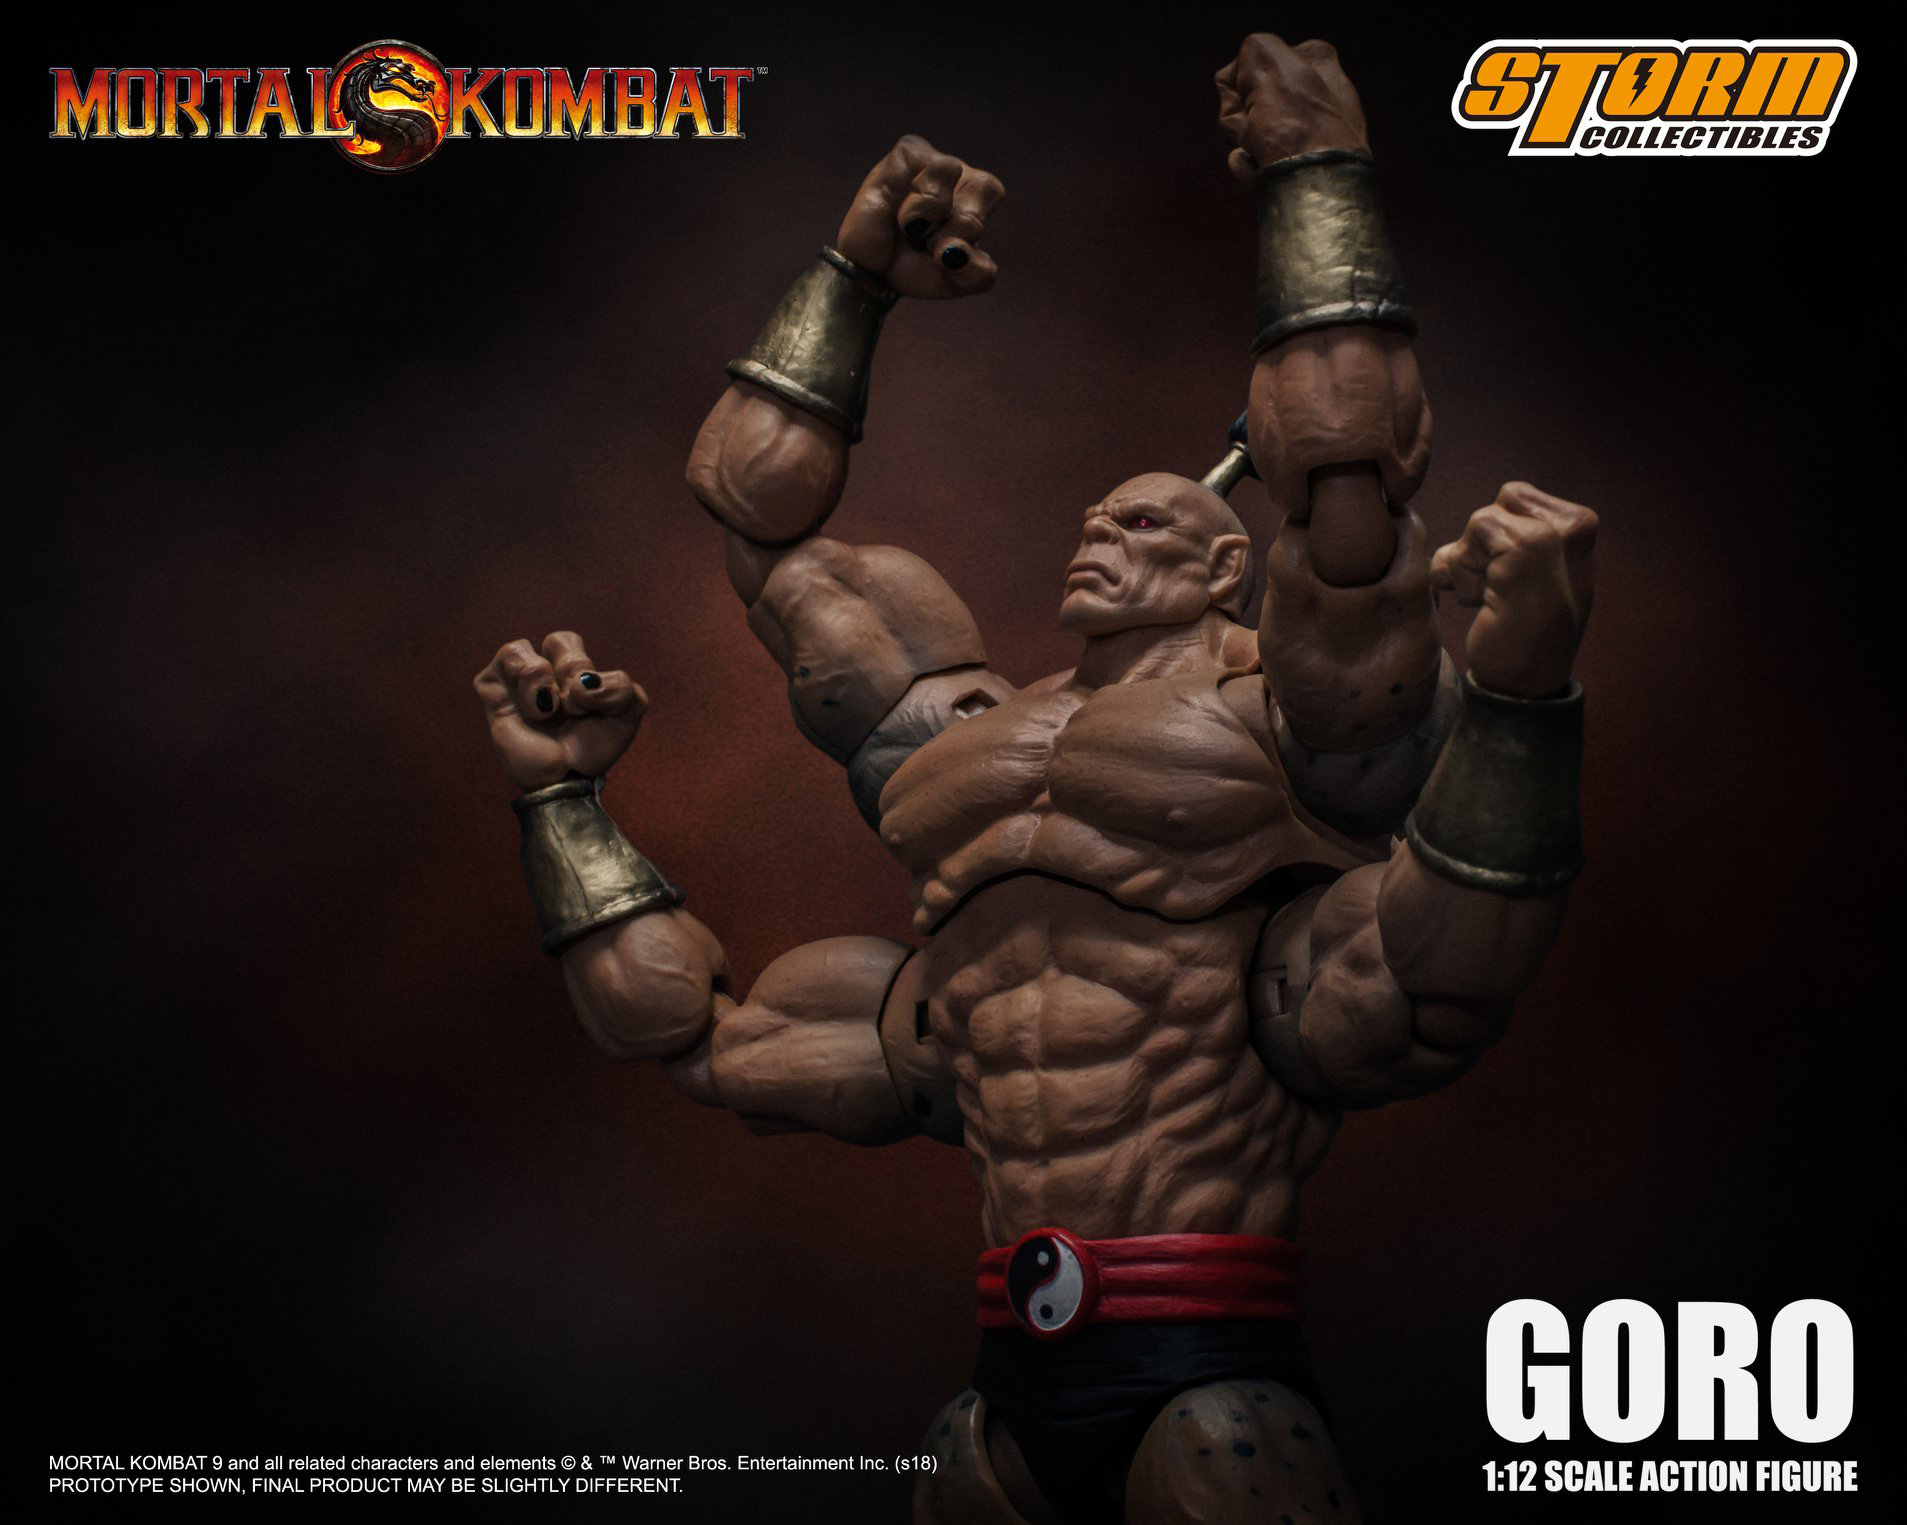 storm-mortal-kombat-goro-preview